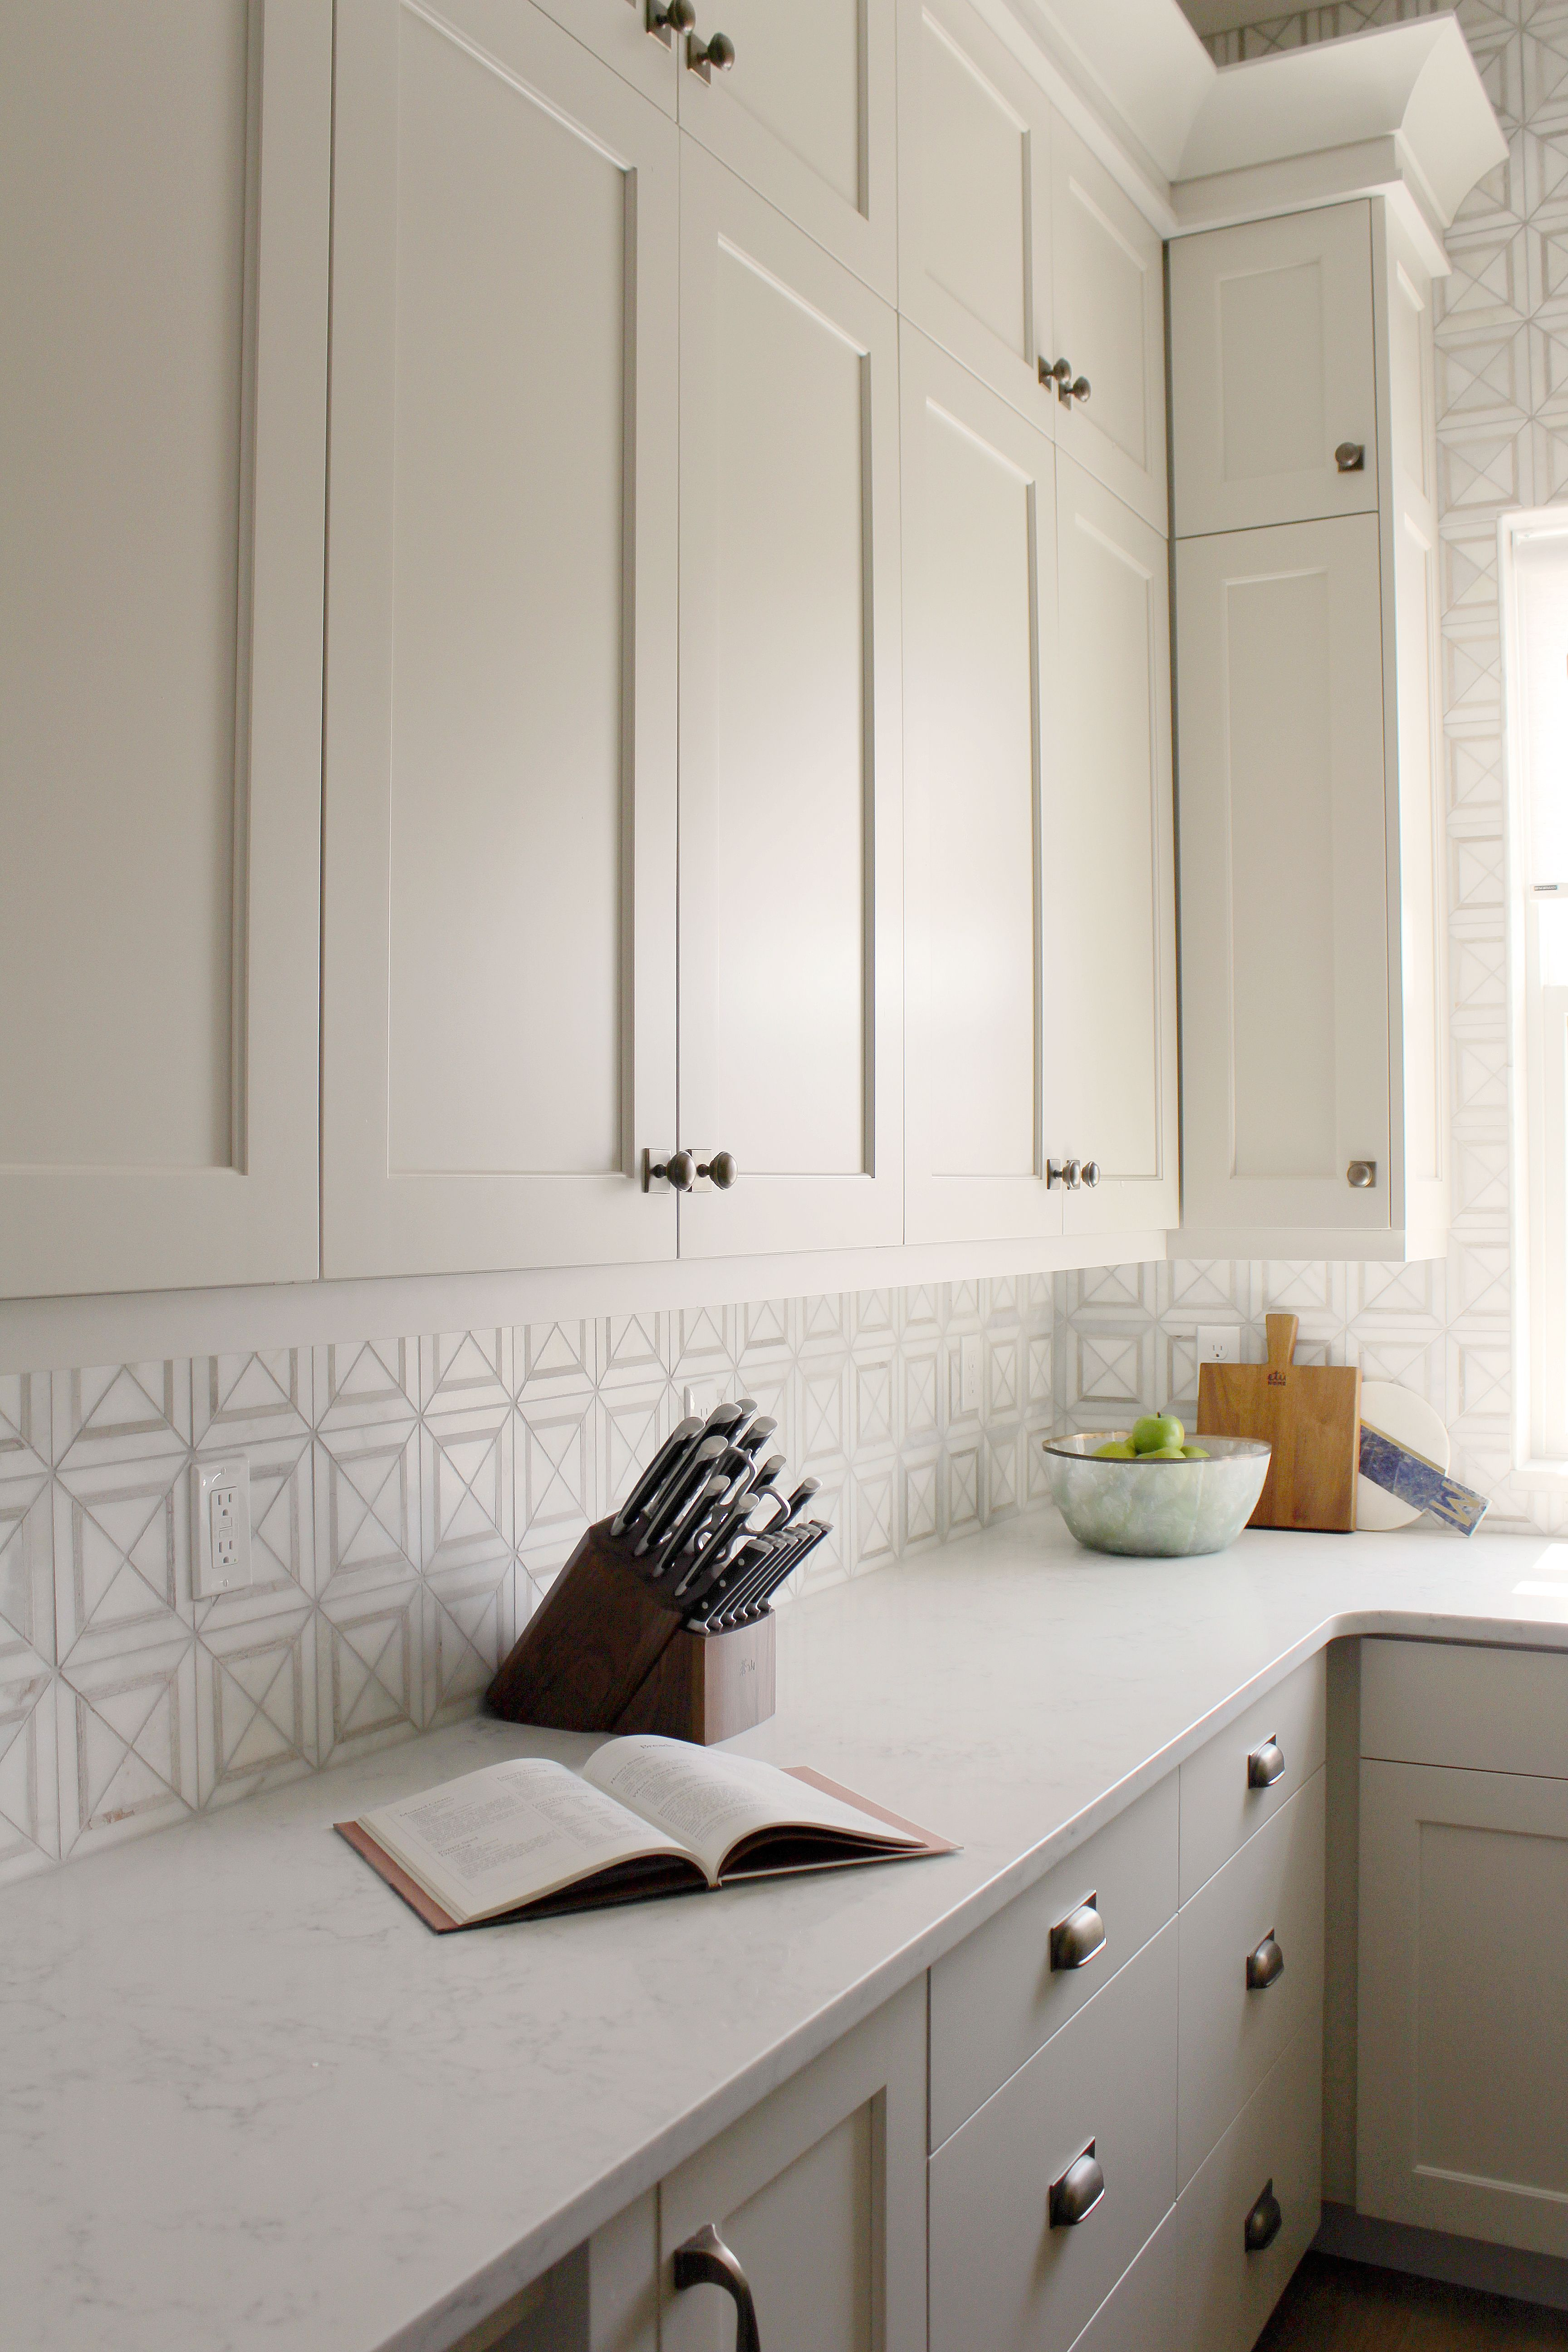 Popular Kitchen Cabinet Colors Cabinet Color Is Benjamin Moore Edgecomb Gray Cabinet Paint